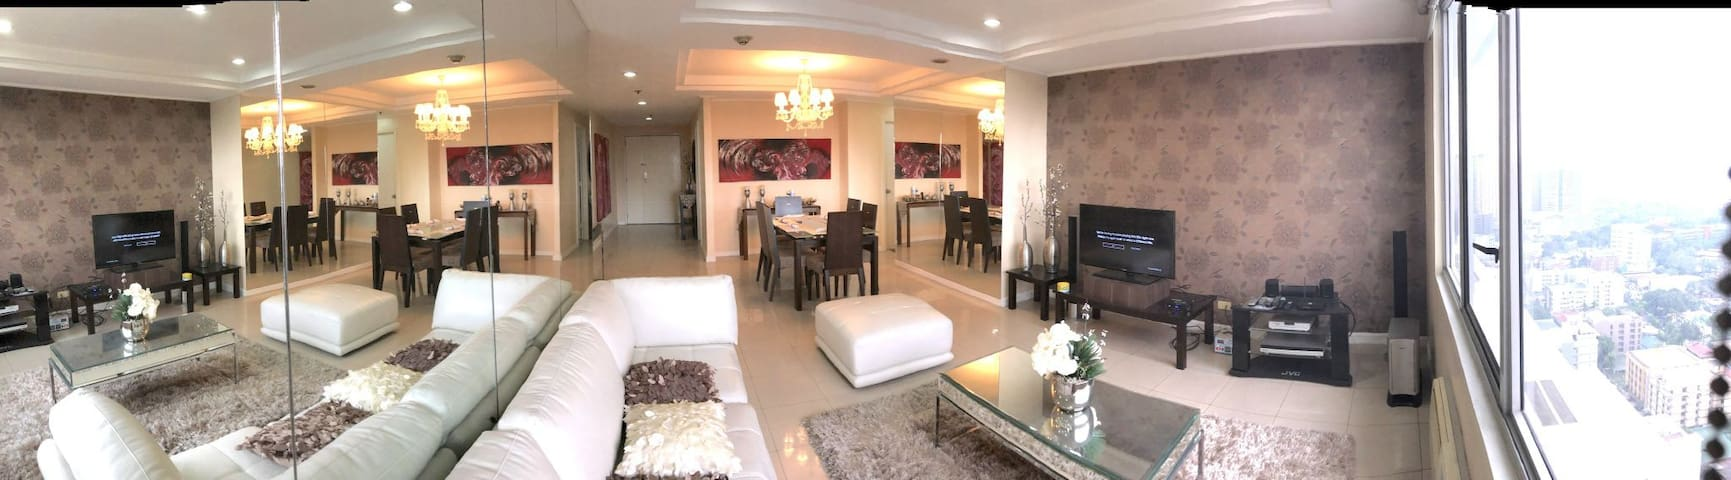 Ortigas fully furnished 2bdr condo 114sqm